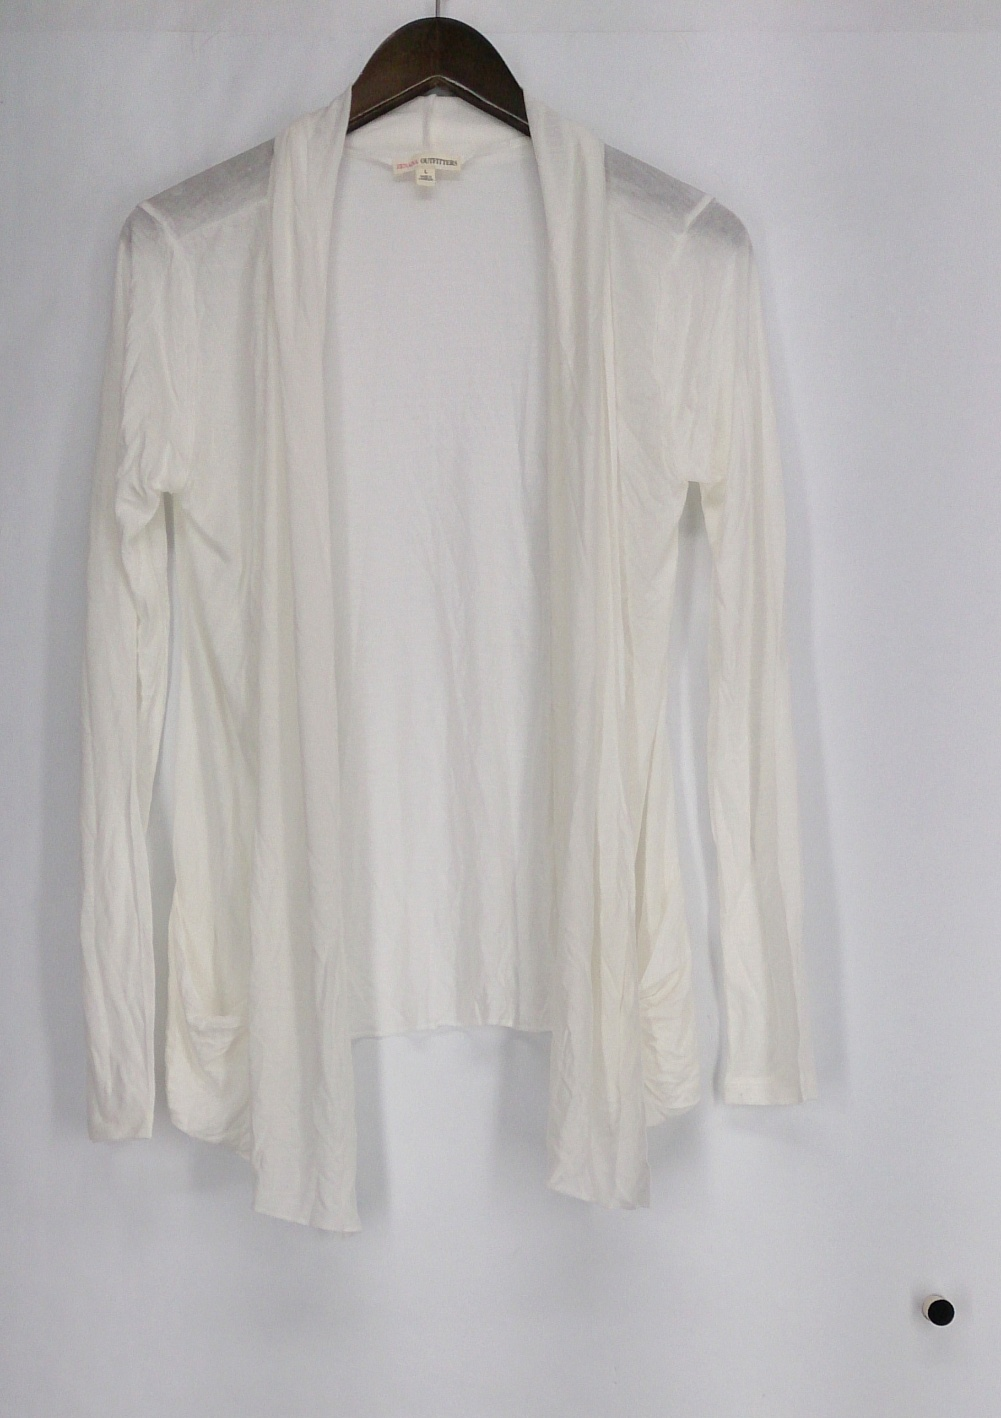 Zenana Outfitters Sweater L Long Sleeve Open Front Cardigans Heather White | eBay